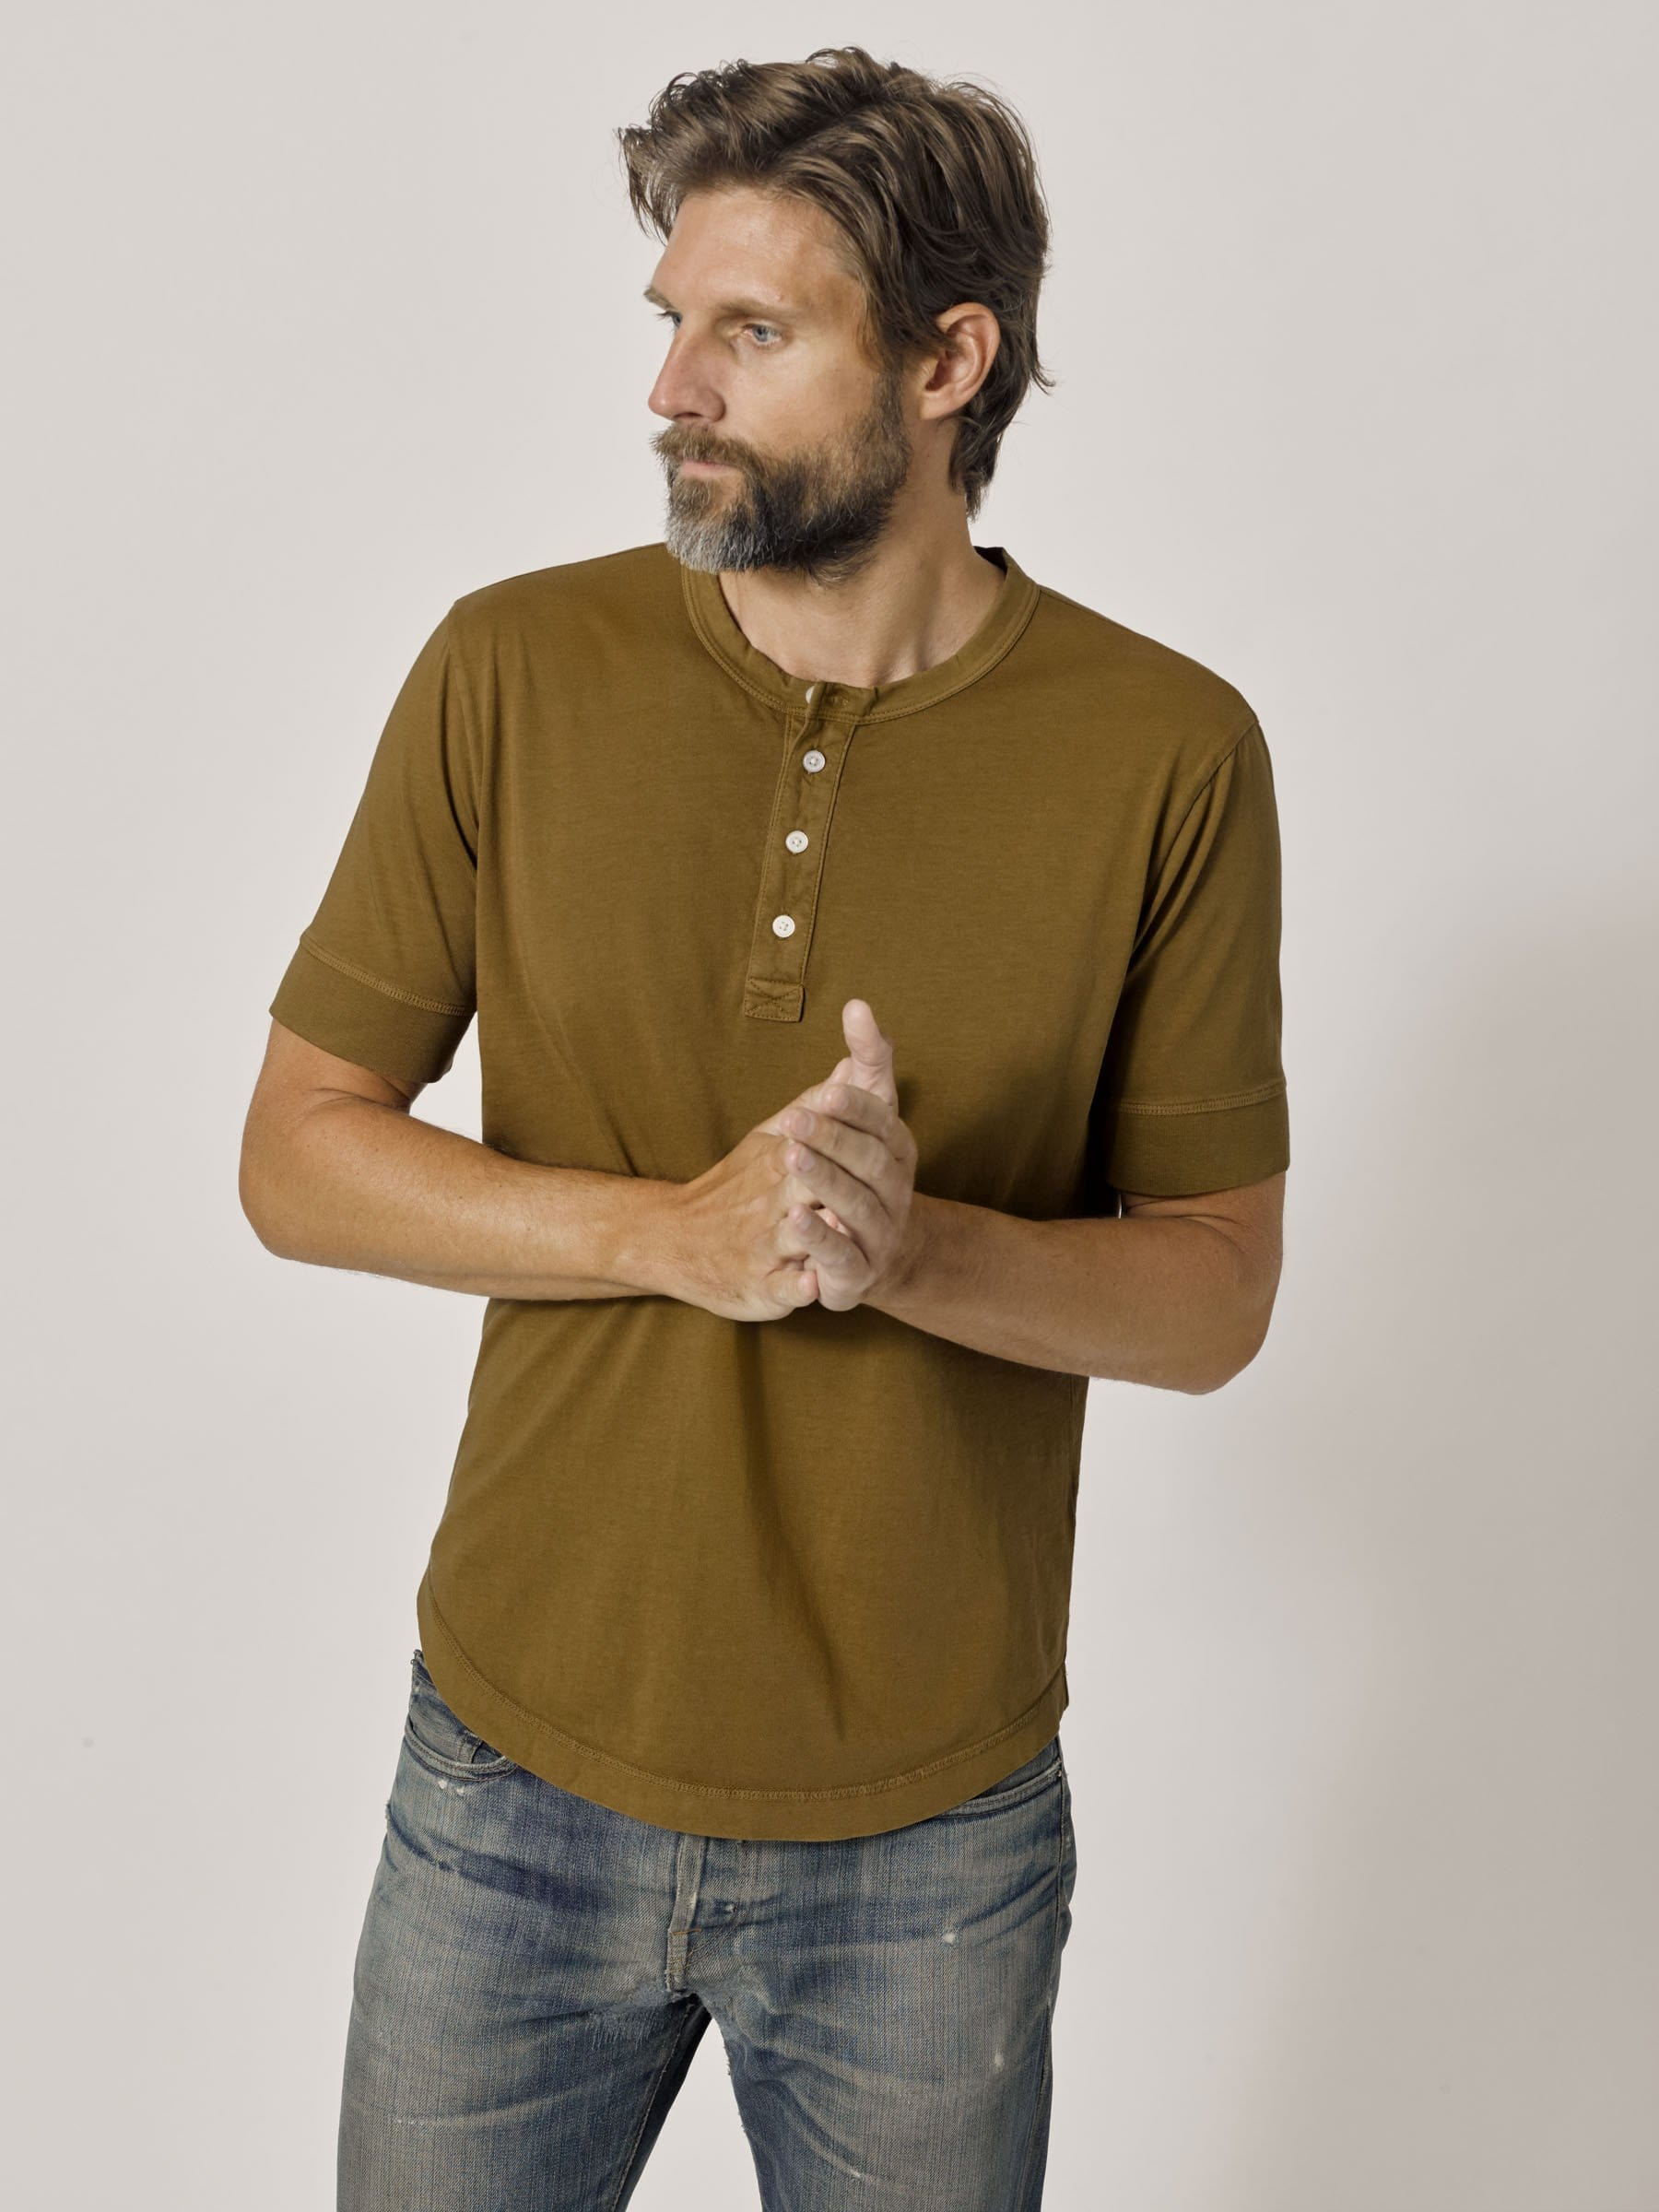 Buck Mason - Bronze Venice Wash Pima Short Sleeve Curved Hem Henley